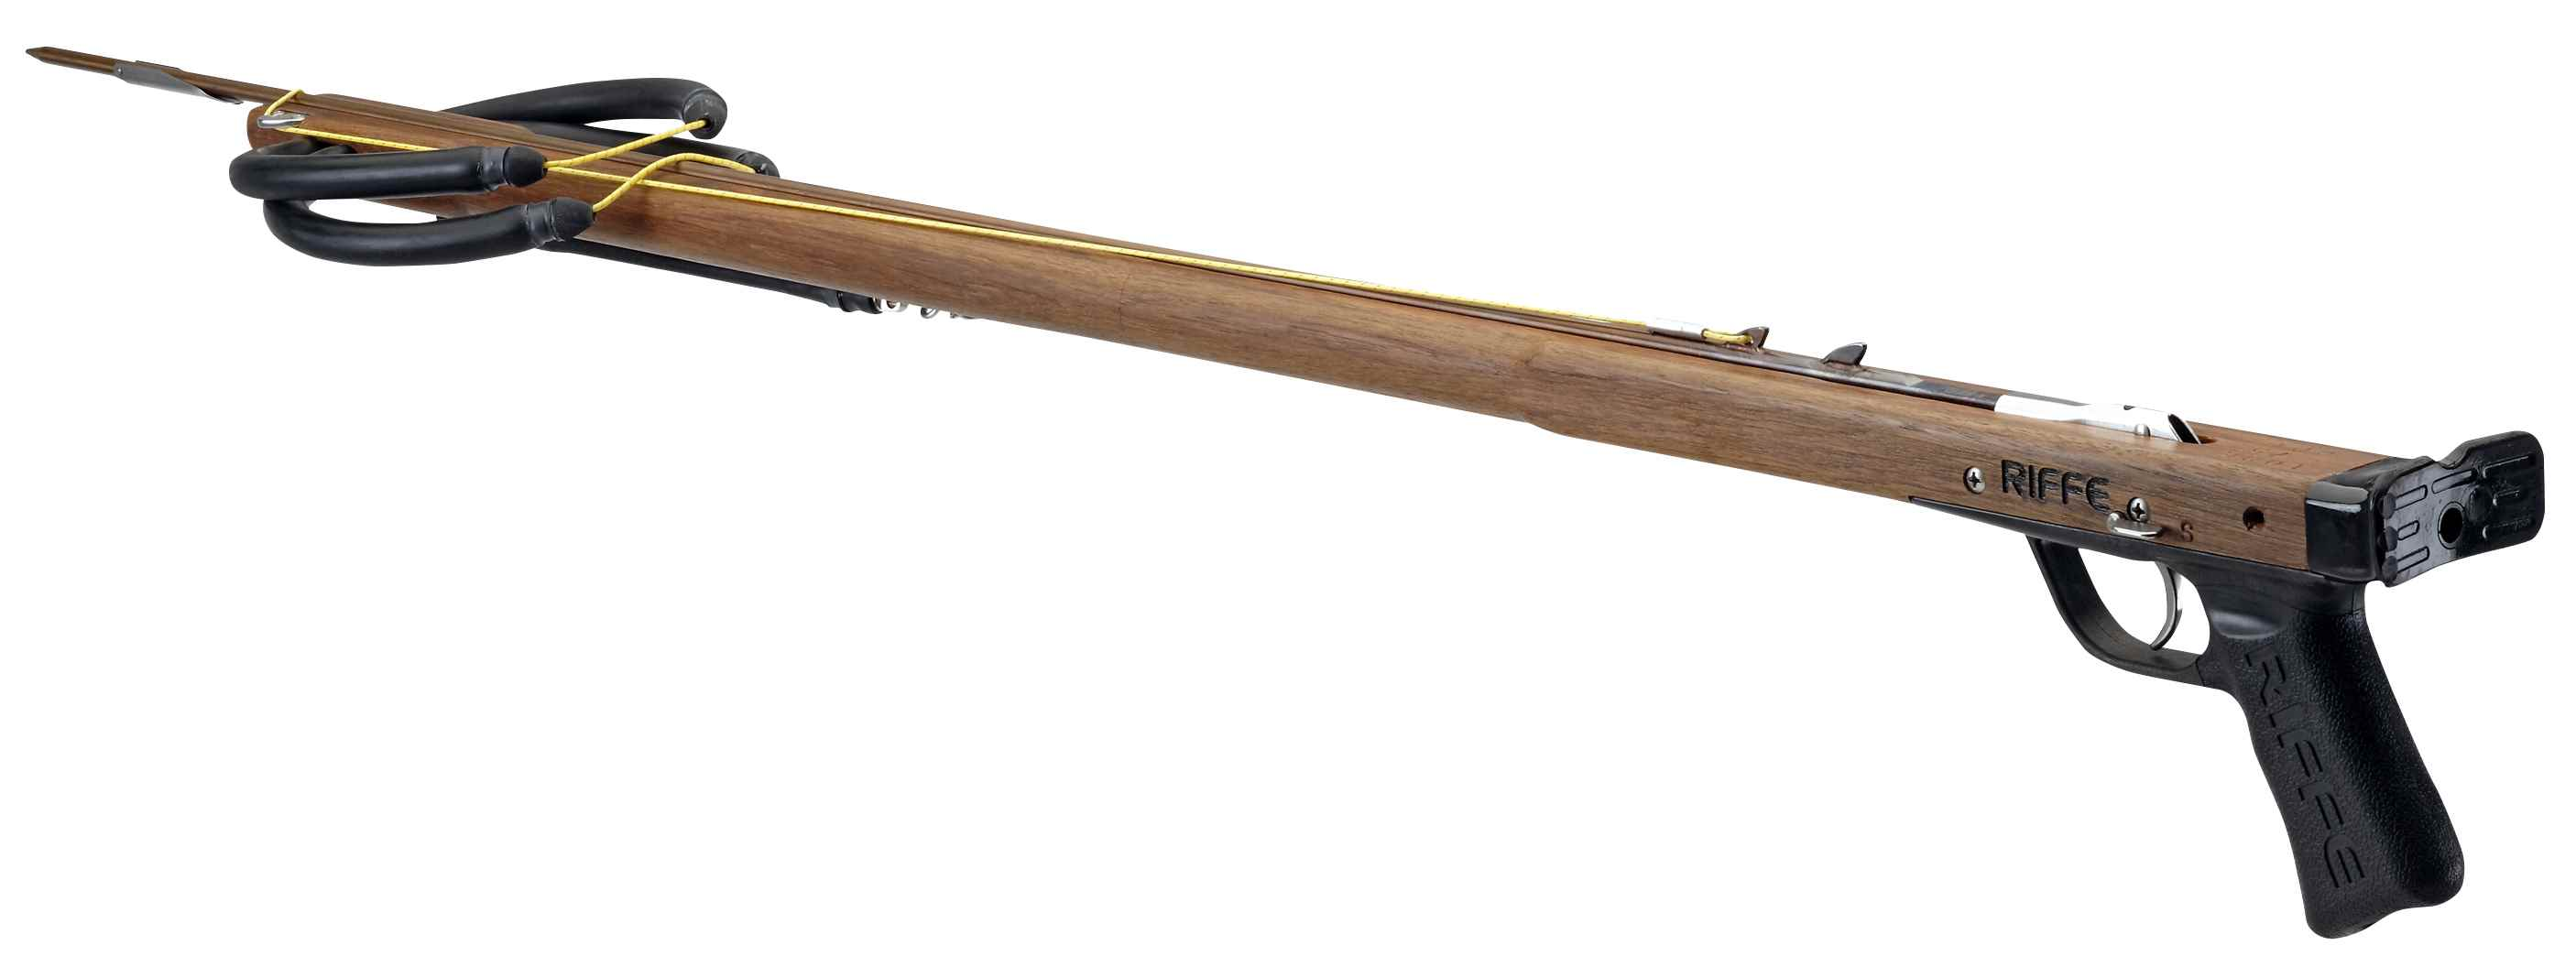 Riffe speargun